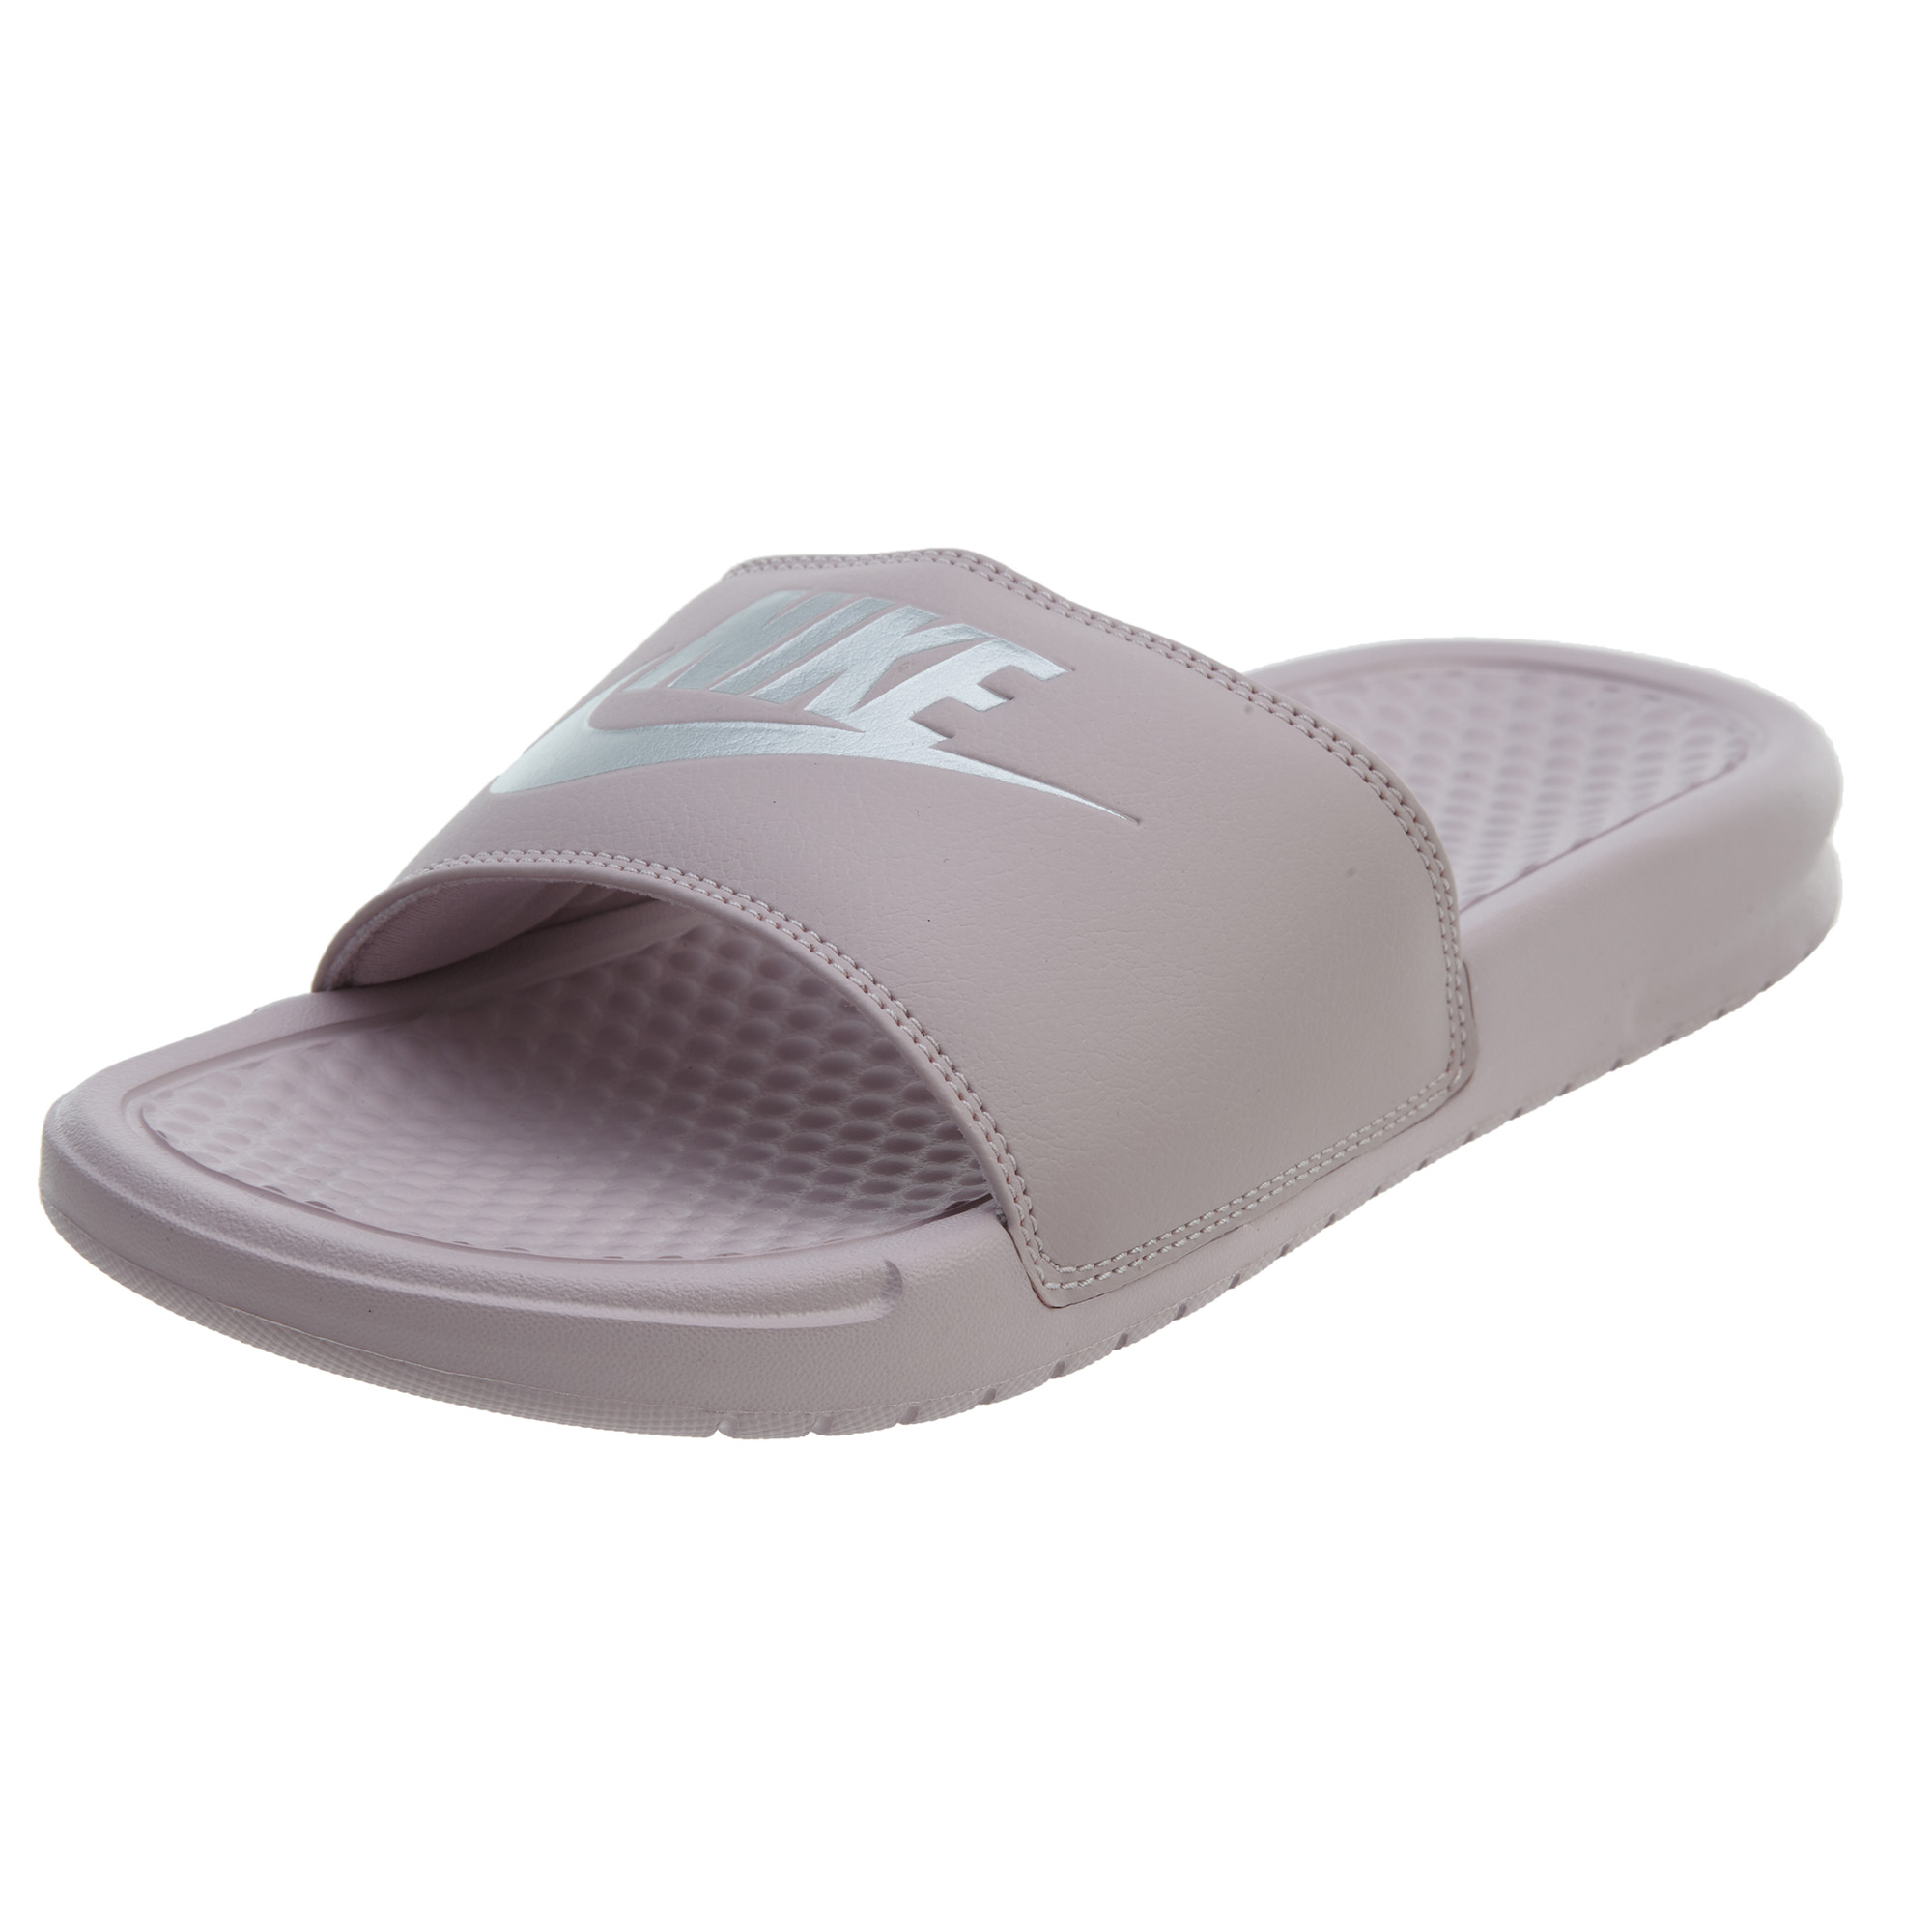 ae09ca460 Details about Nike Womens Benassi JDI Slide Sandals 343881-614